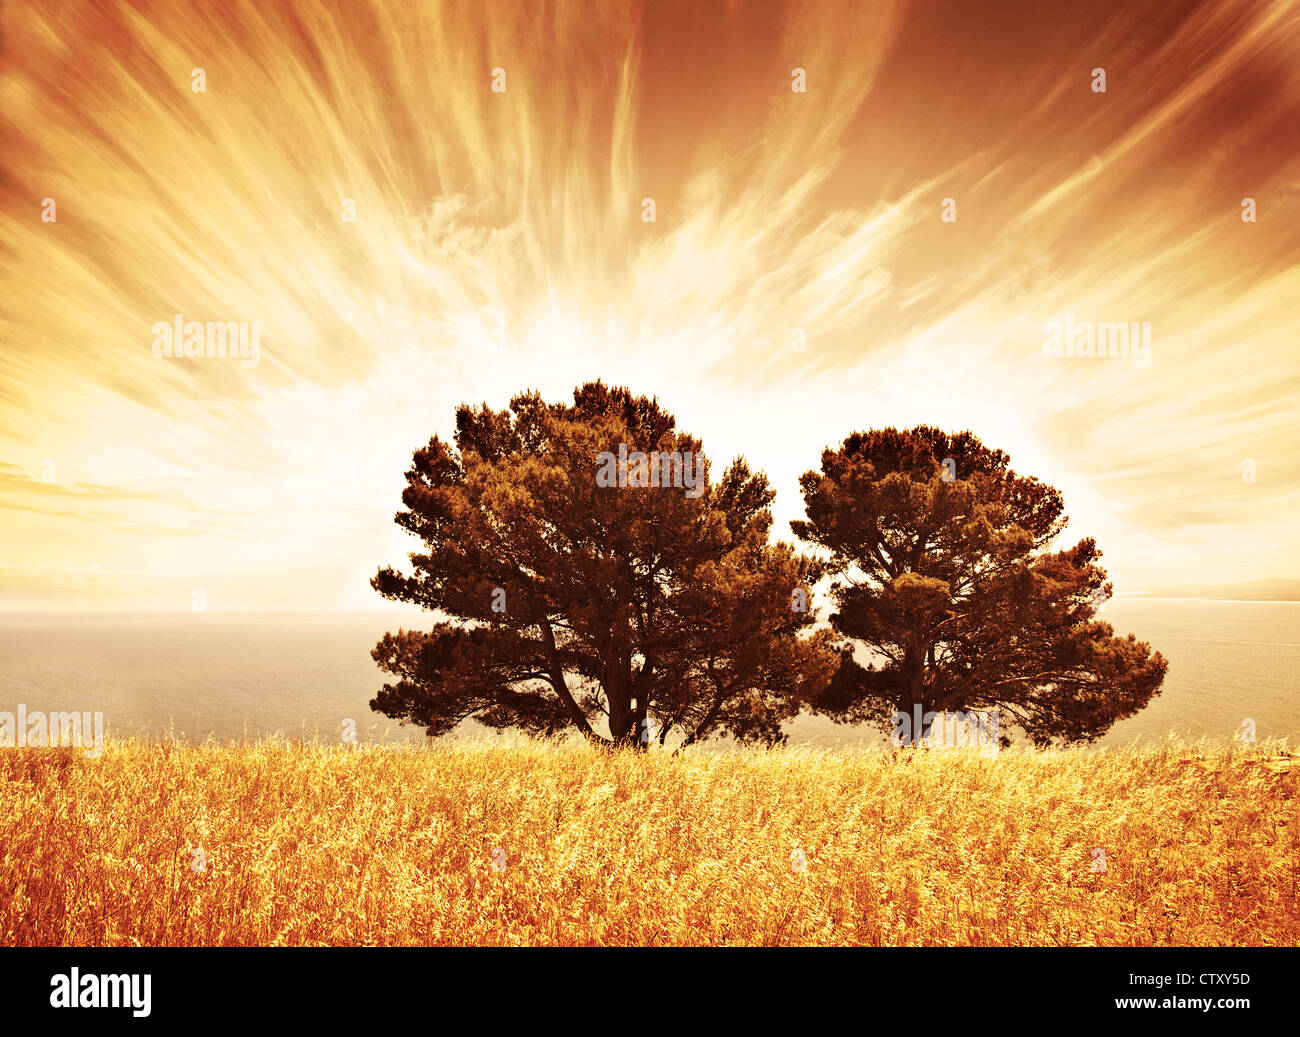 Lonely old trees, grunge autumn background, warm orange sunlight, big dry oak tree on wheat field over sunset, South - Stock Image